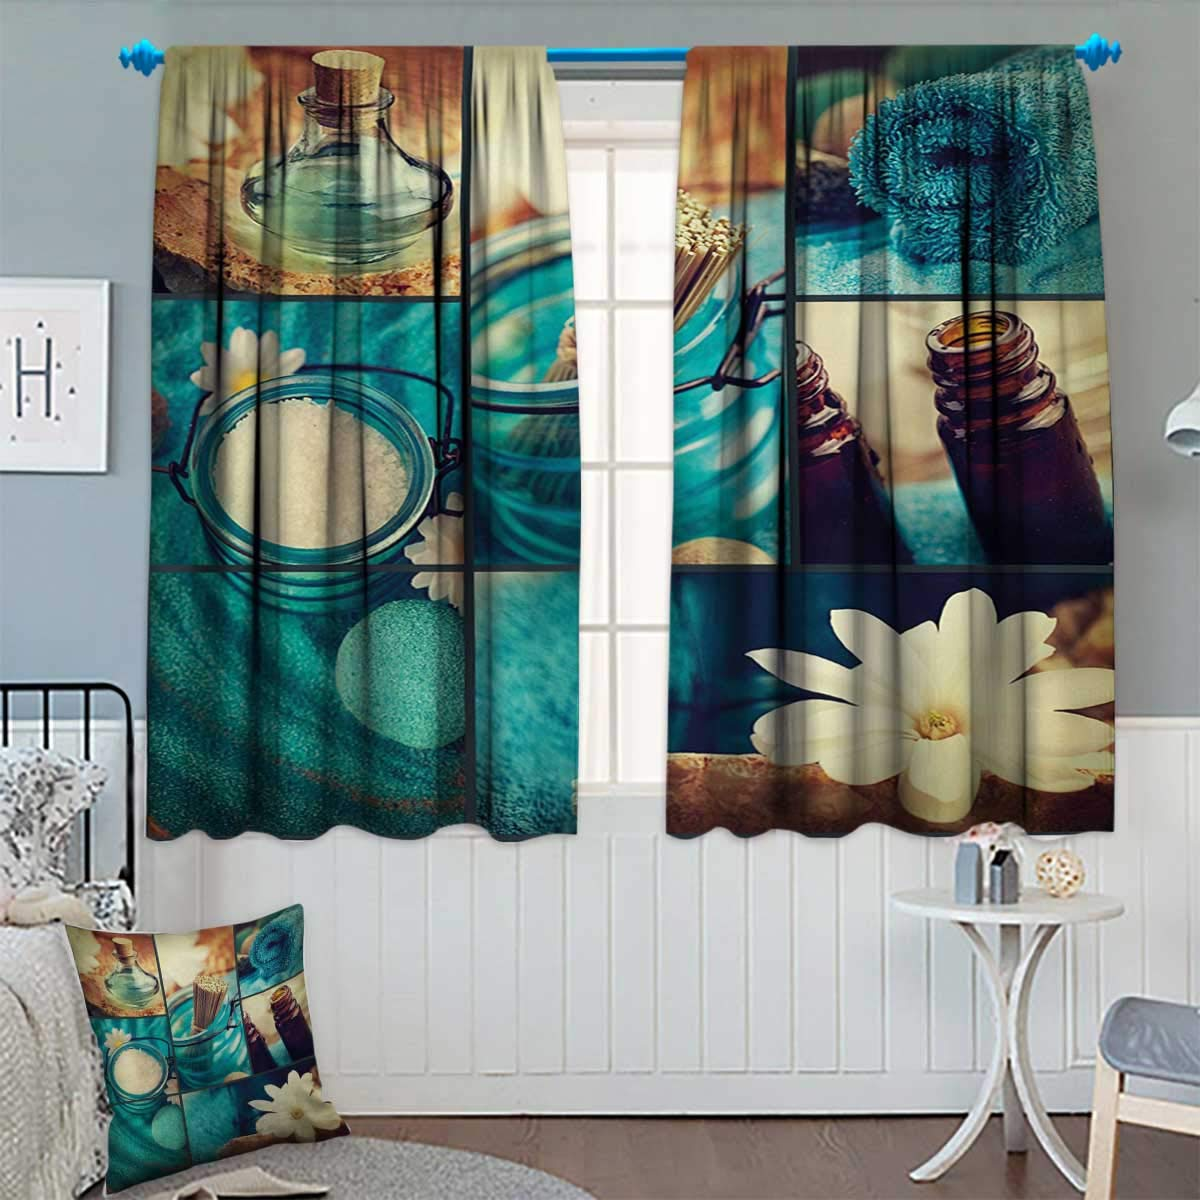 Anhounine Spa,Blackout Curtain,Blue Themed White Daisies Scents Towels and Incense Artwork Collage Design,Window Curtain Fabric,Blue Brown and White,W120 x L84 inch